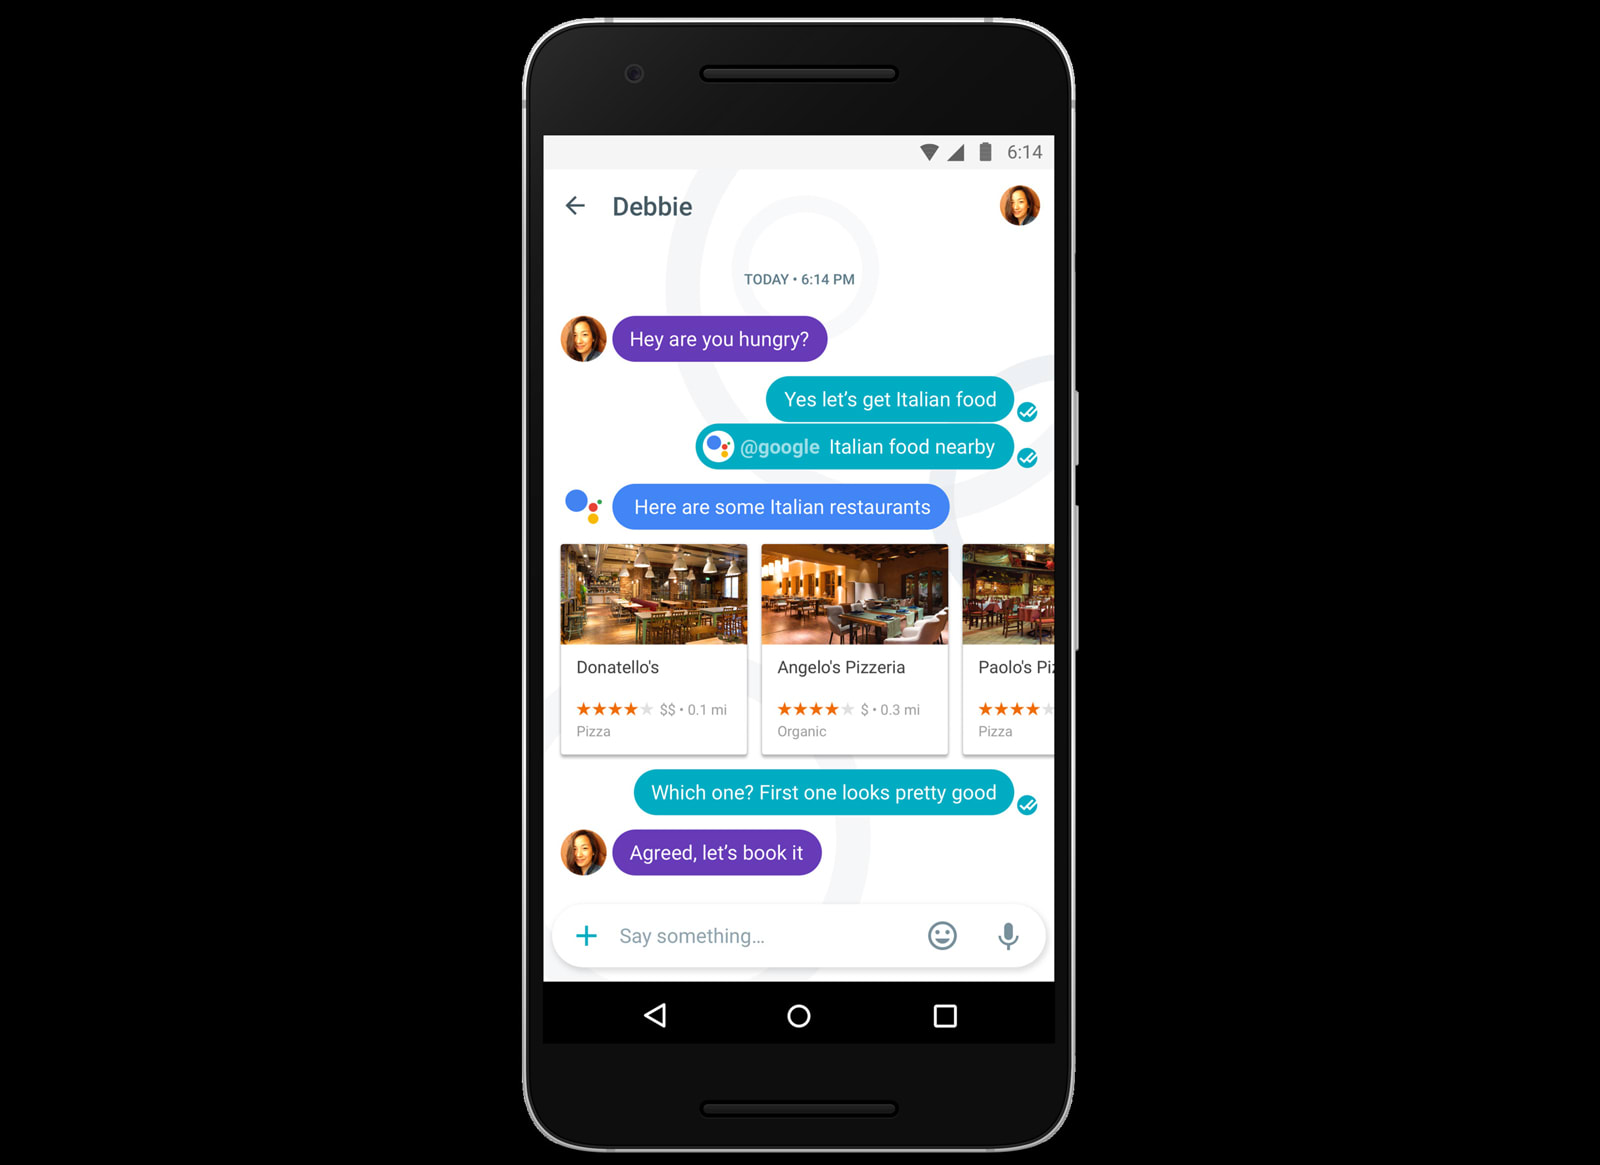 Brits, say Allo to Google's new messaging app